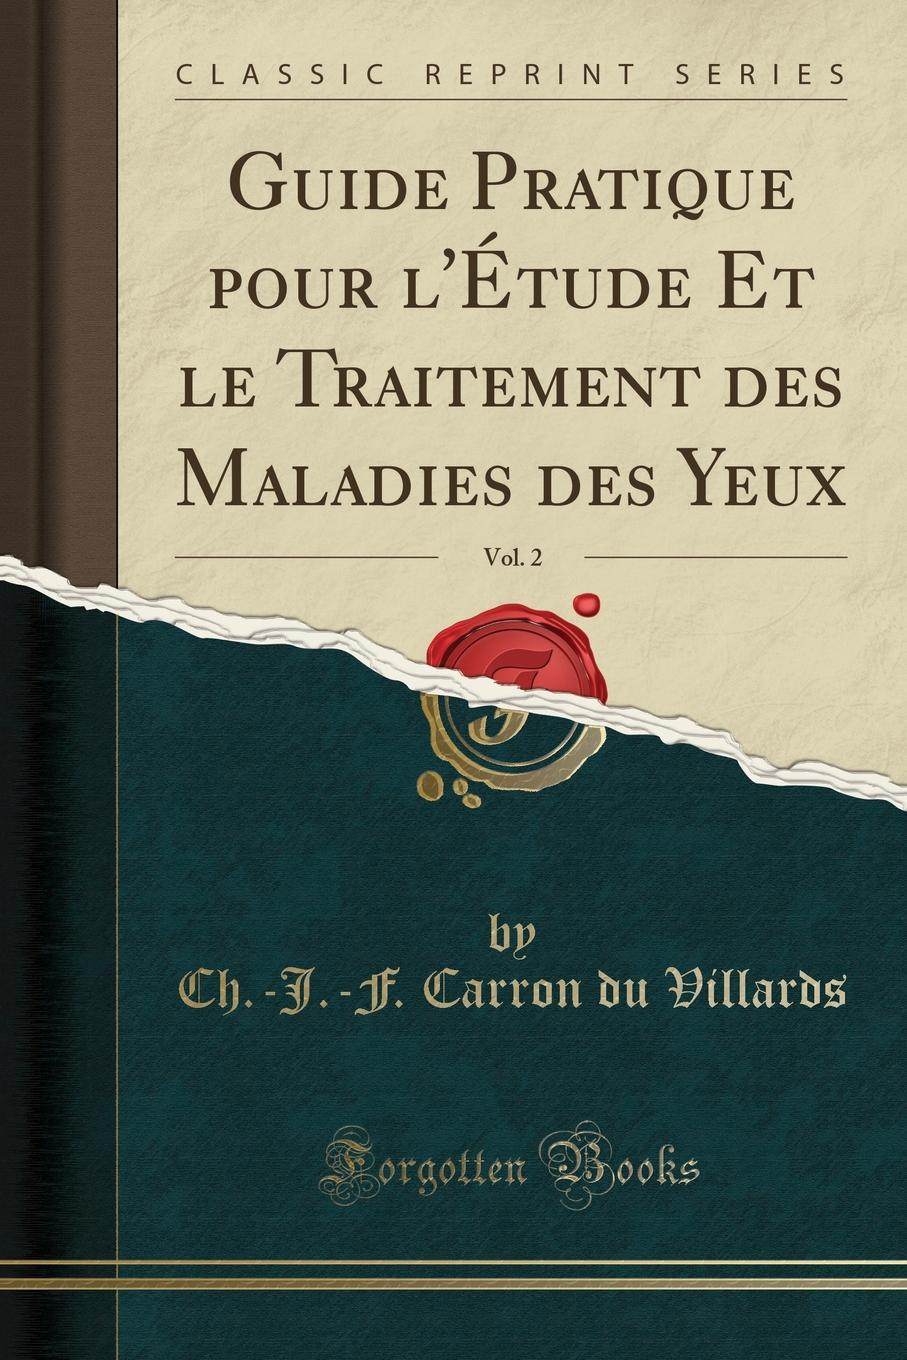 Ch.-J.-F. Carron du Villards Guide Pratique pour l.Etude Et le Traitement des Maladies des Yeux, Vol. 2 (Classic Reprint) françois calot traitement rationnel du mal de pott a l usage des praticiens